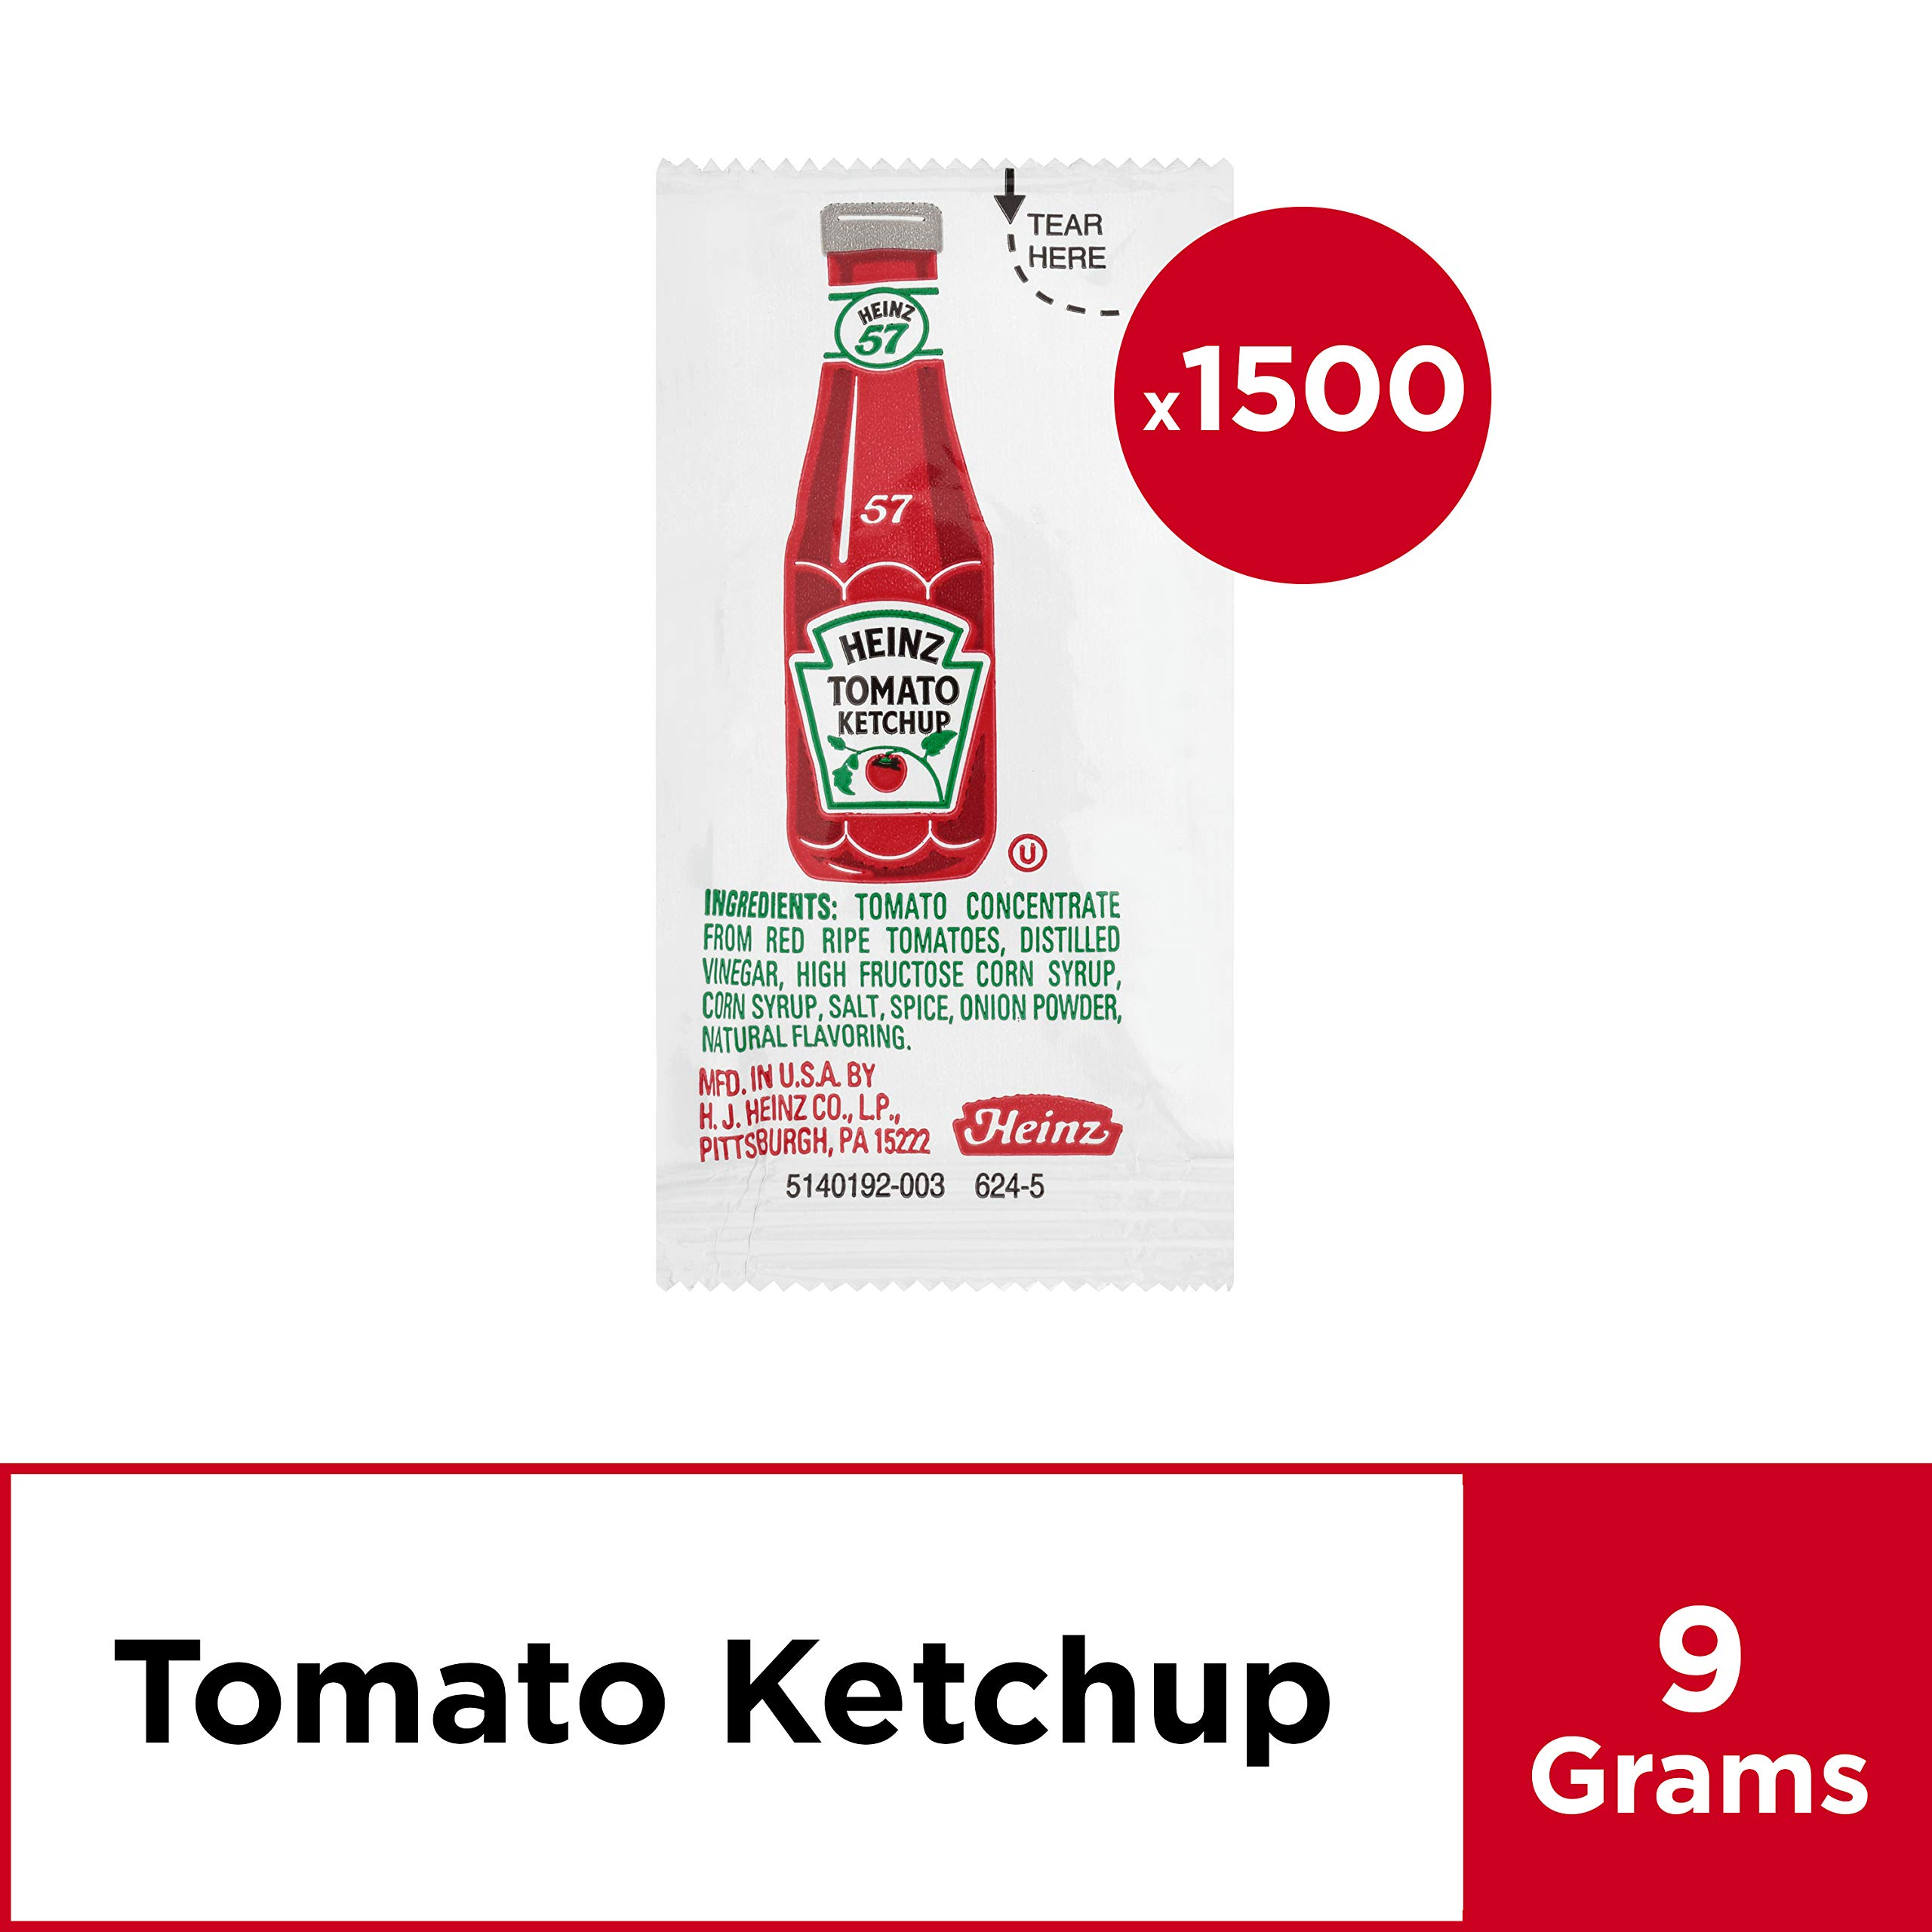 Heinz Ketchup Single Serve Packets (9 g Packets, Pack of 1500) by Heinz